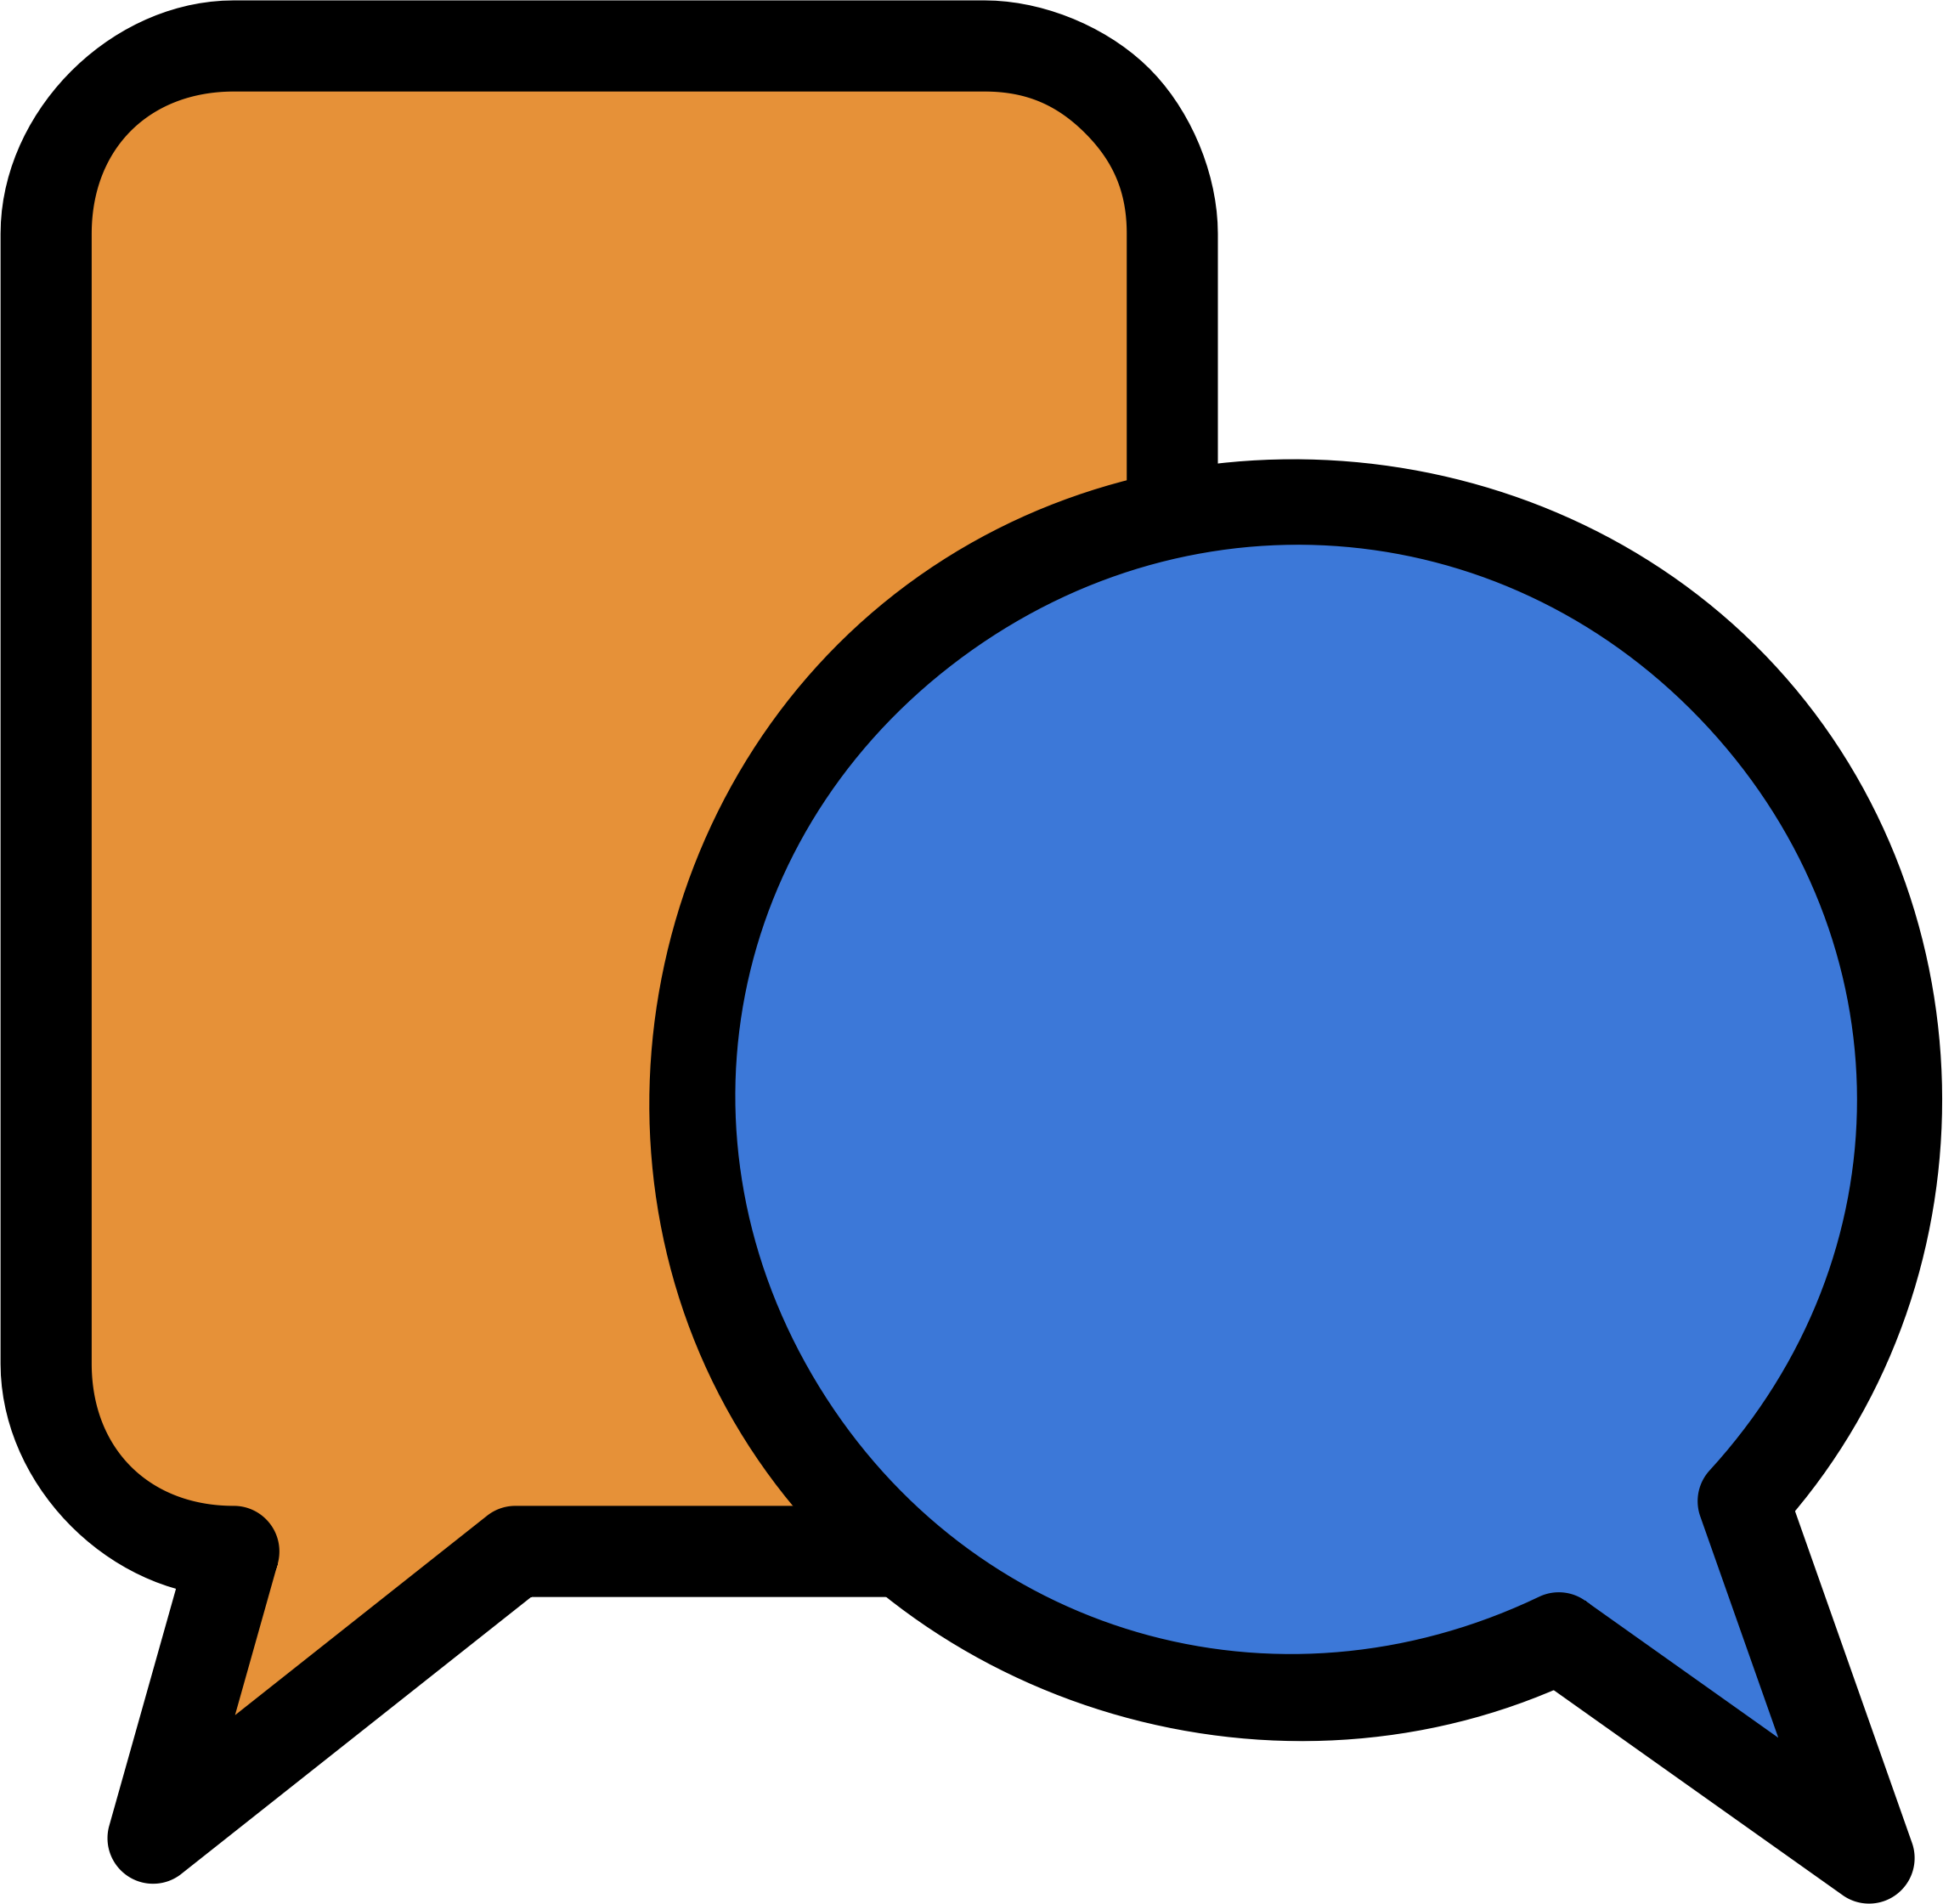 Moodle icon big image. Debate clipart kid discussion